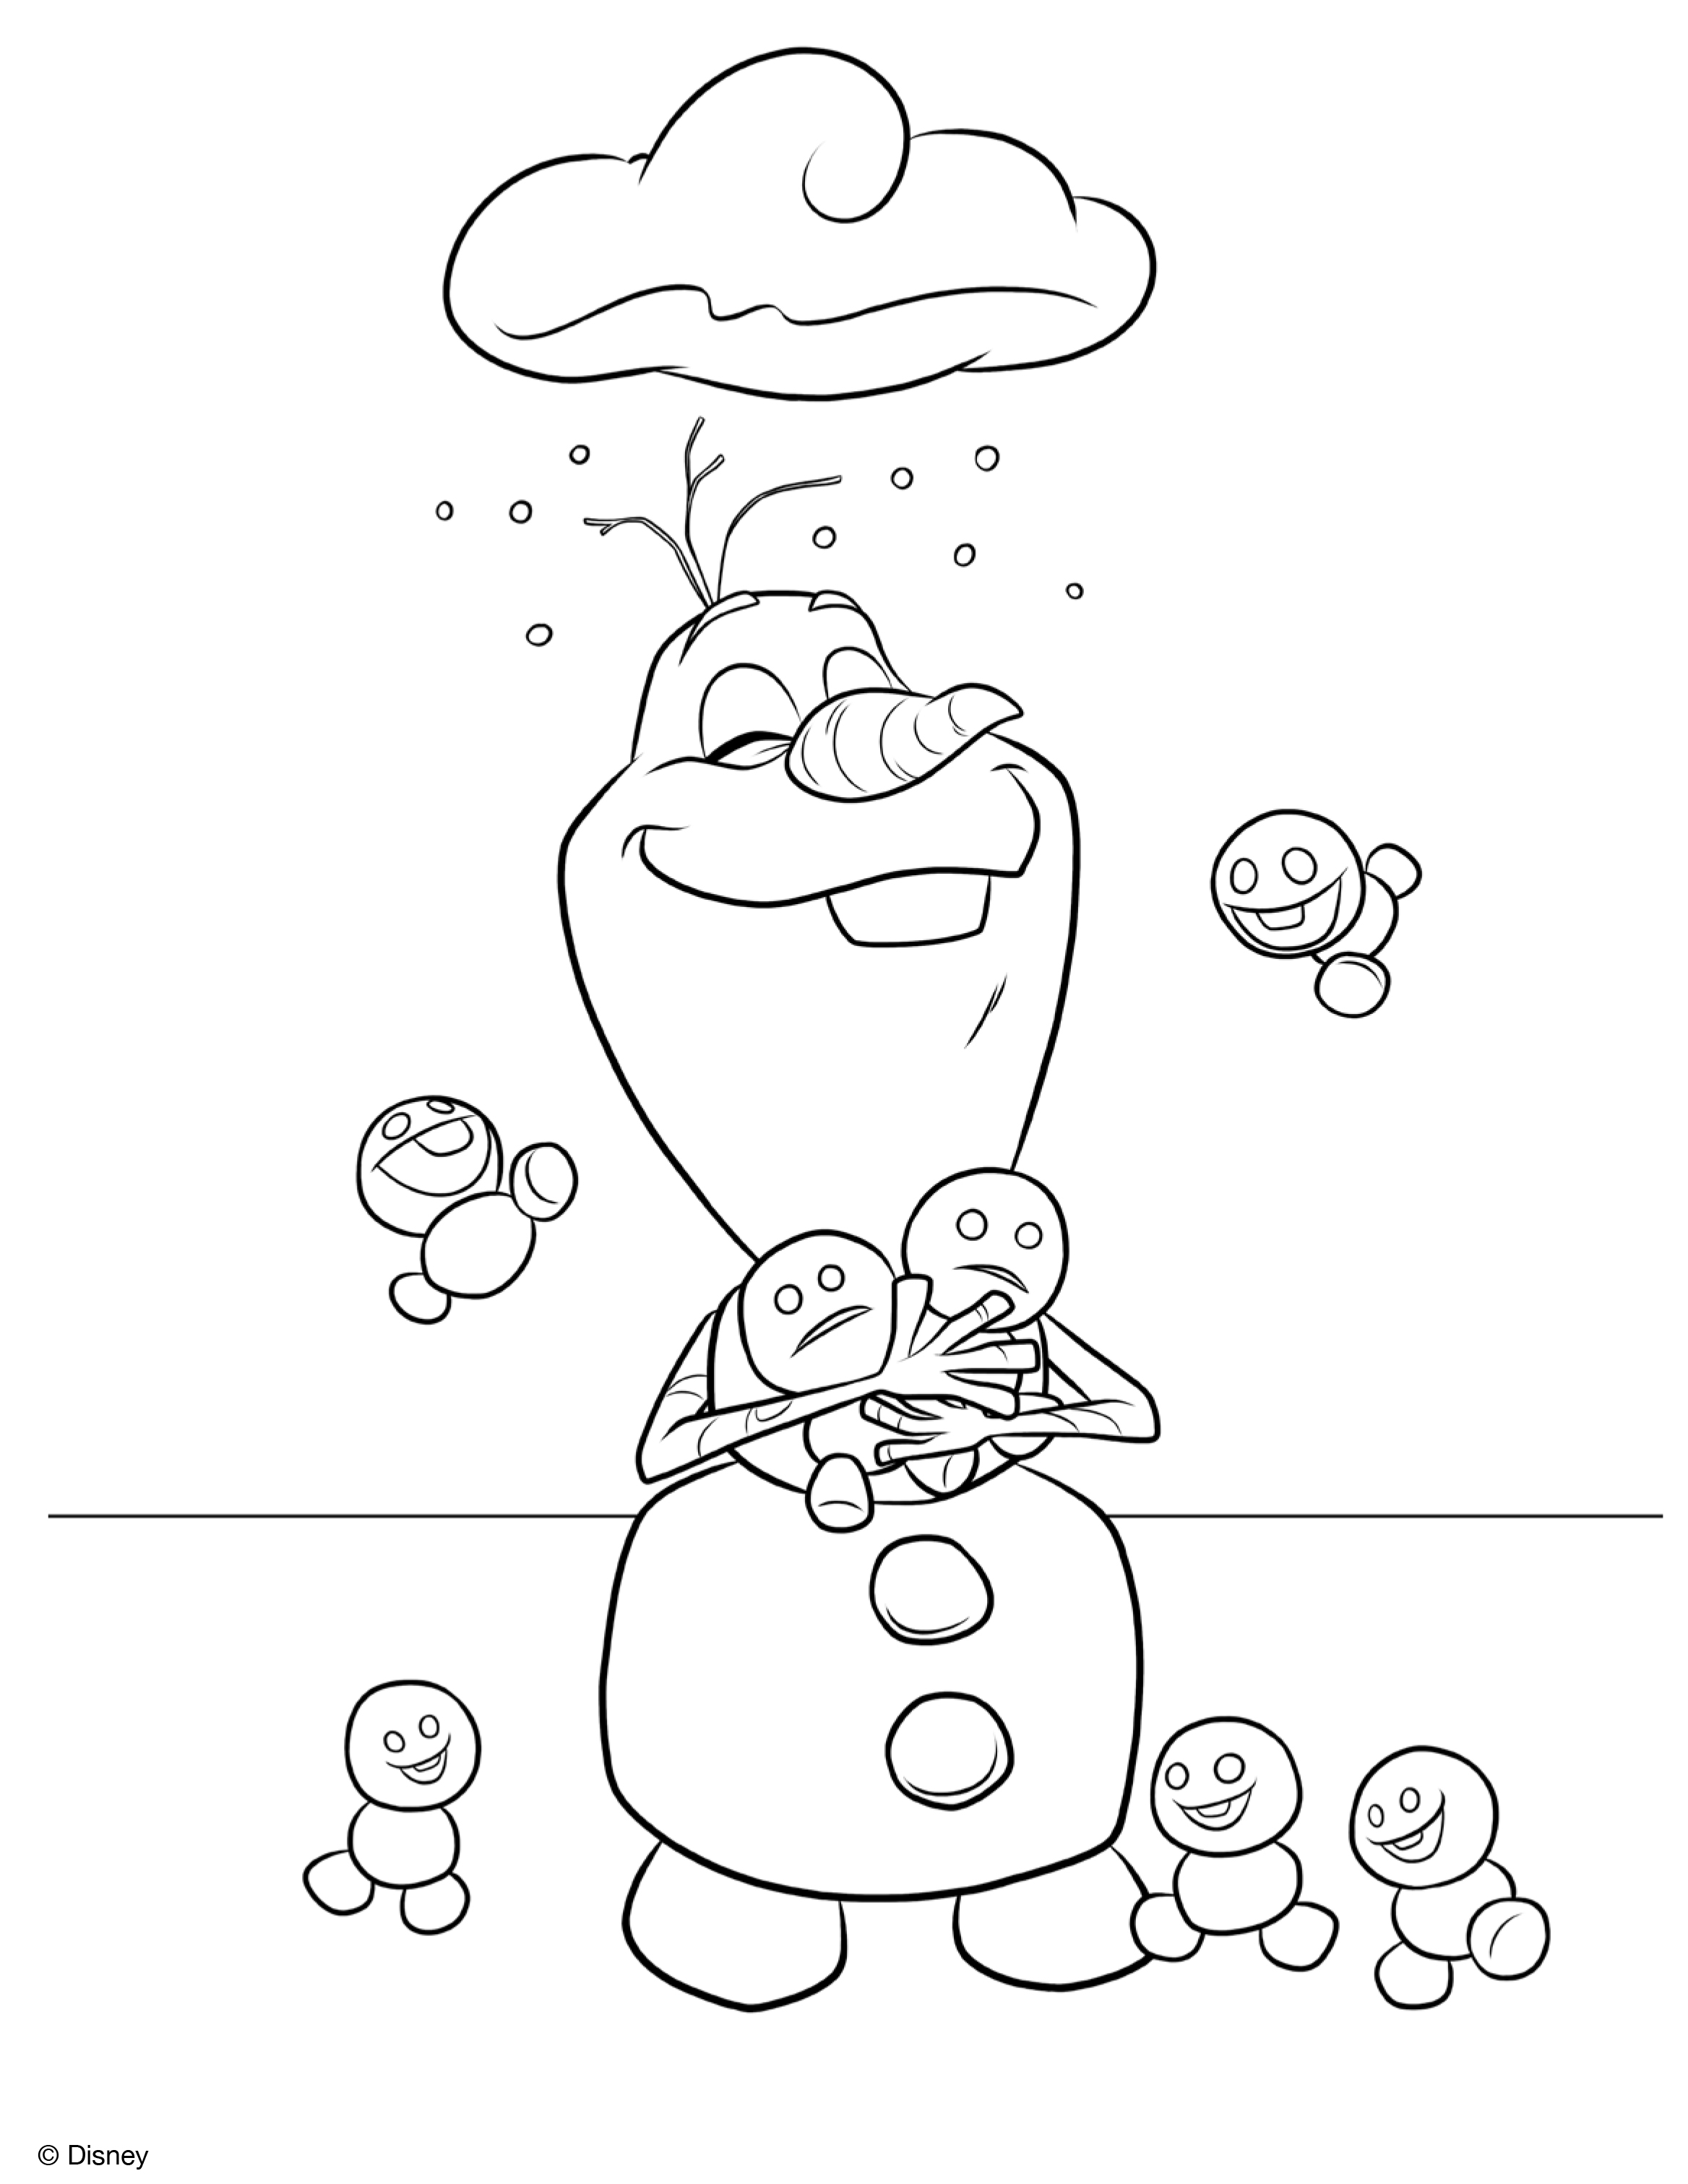 olaf coloring sheets free frozens olaf coloring pages best coloring pages for kids free olaf coloring sheets